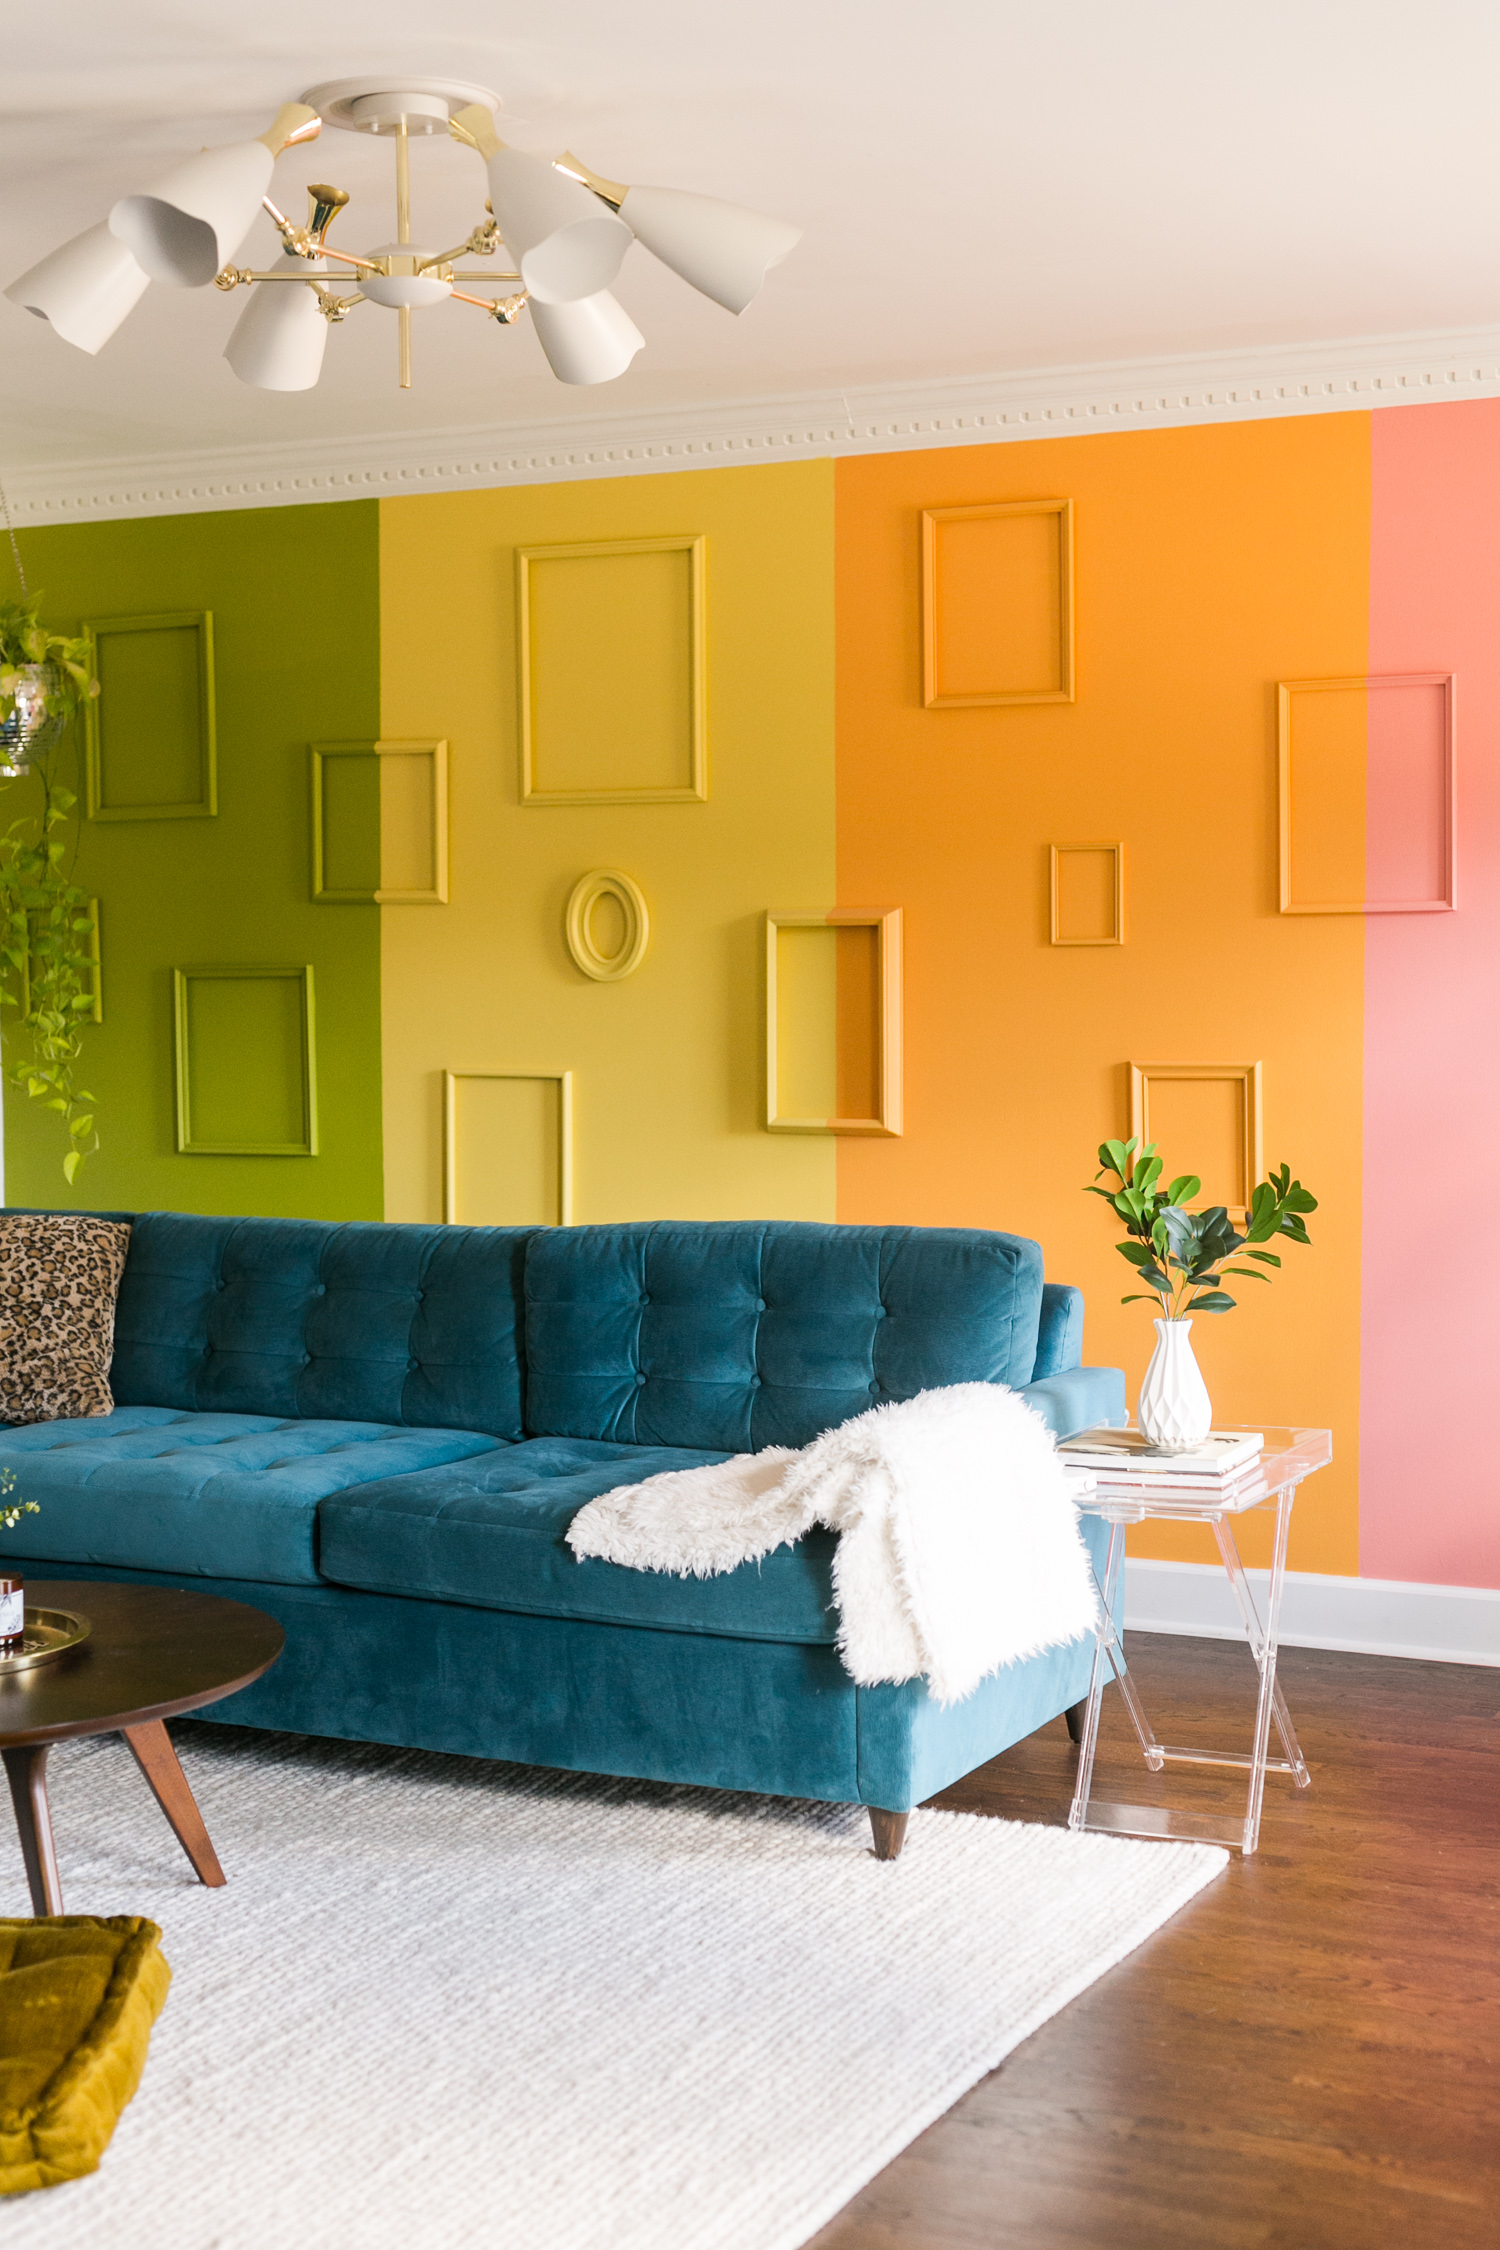 At Home with Natalie Ensor in Nashville, Tennessee